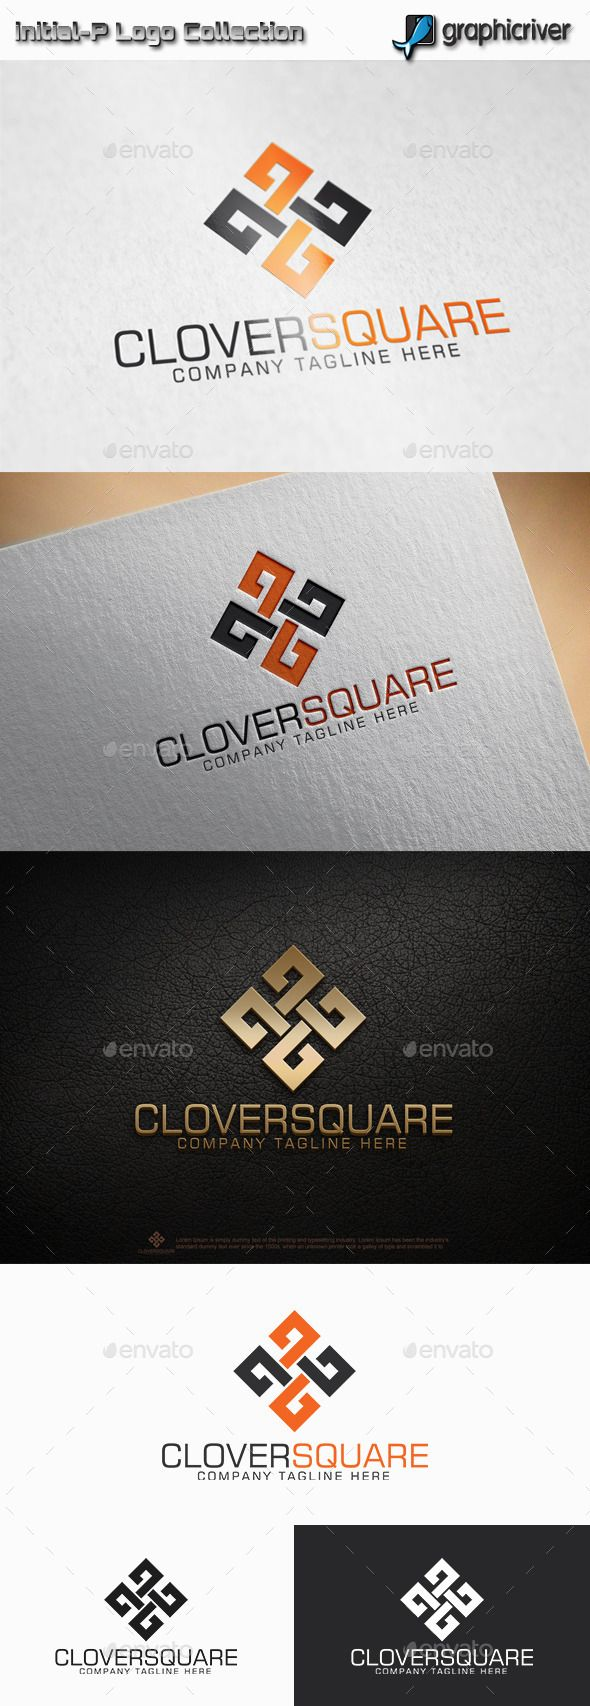 Clover Square Logo — Vector EPS #solutions #logo • Available here → https://graphicriver.net/item/clover-square-logo/11514651?ref=pxcr